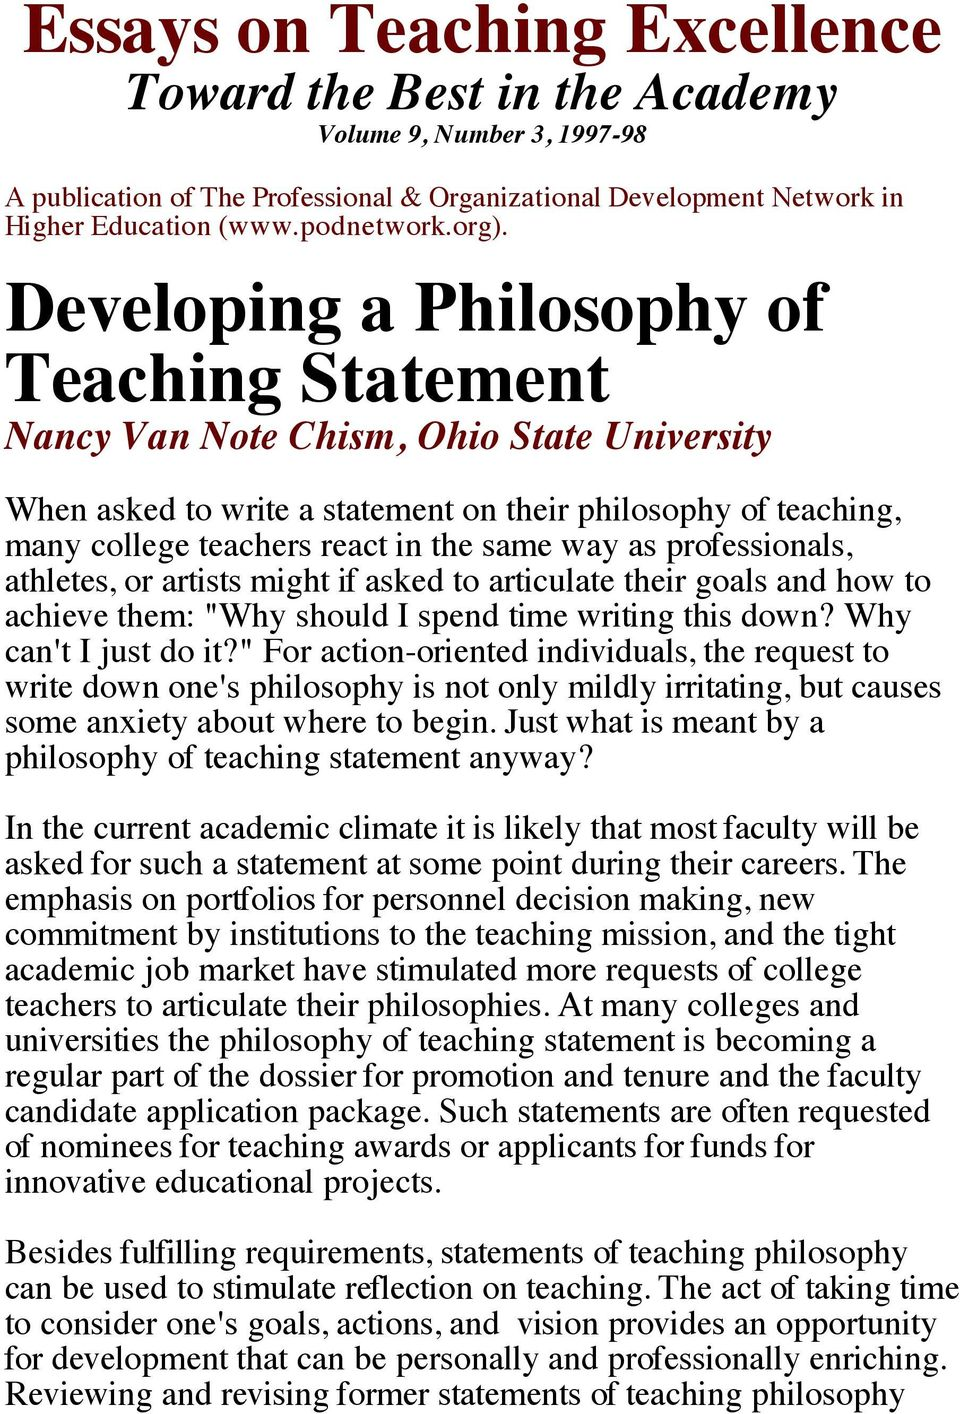 Essays On Teaching Excellence Developing A Philosophy Of Teaching  Same Way As Professionals Athletes Or Artists Might If Asked To  Articulate Their Goals